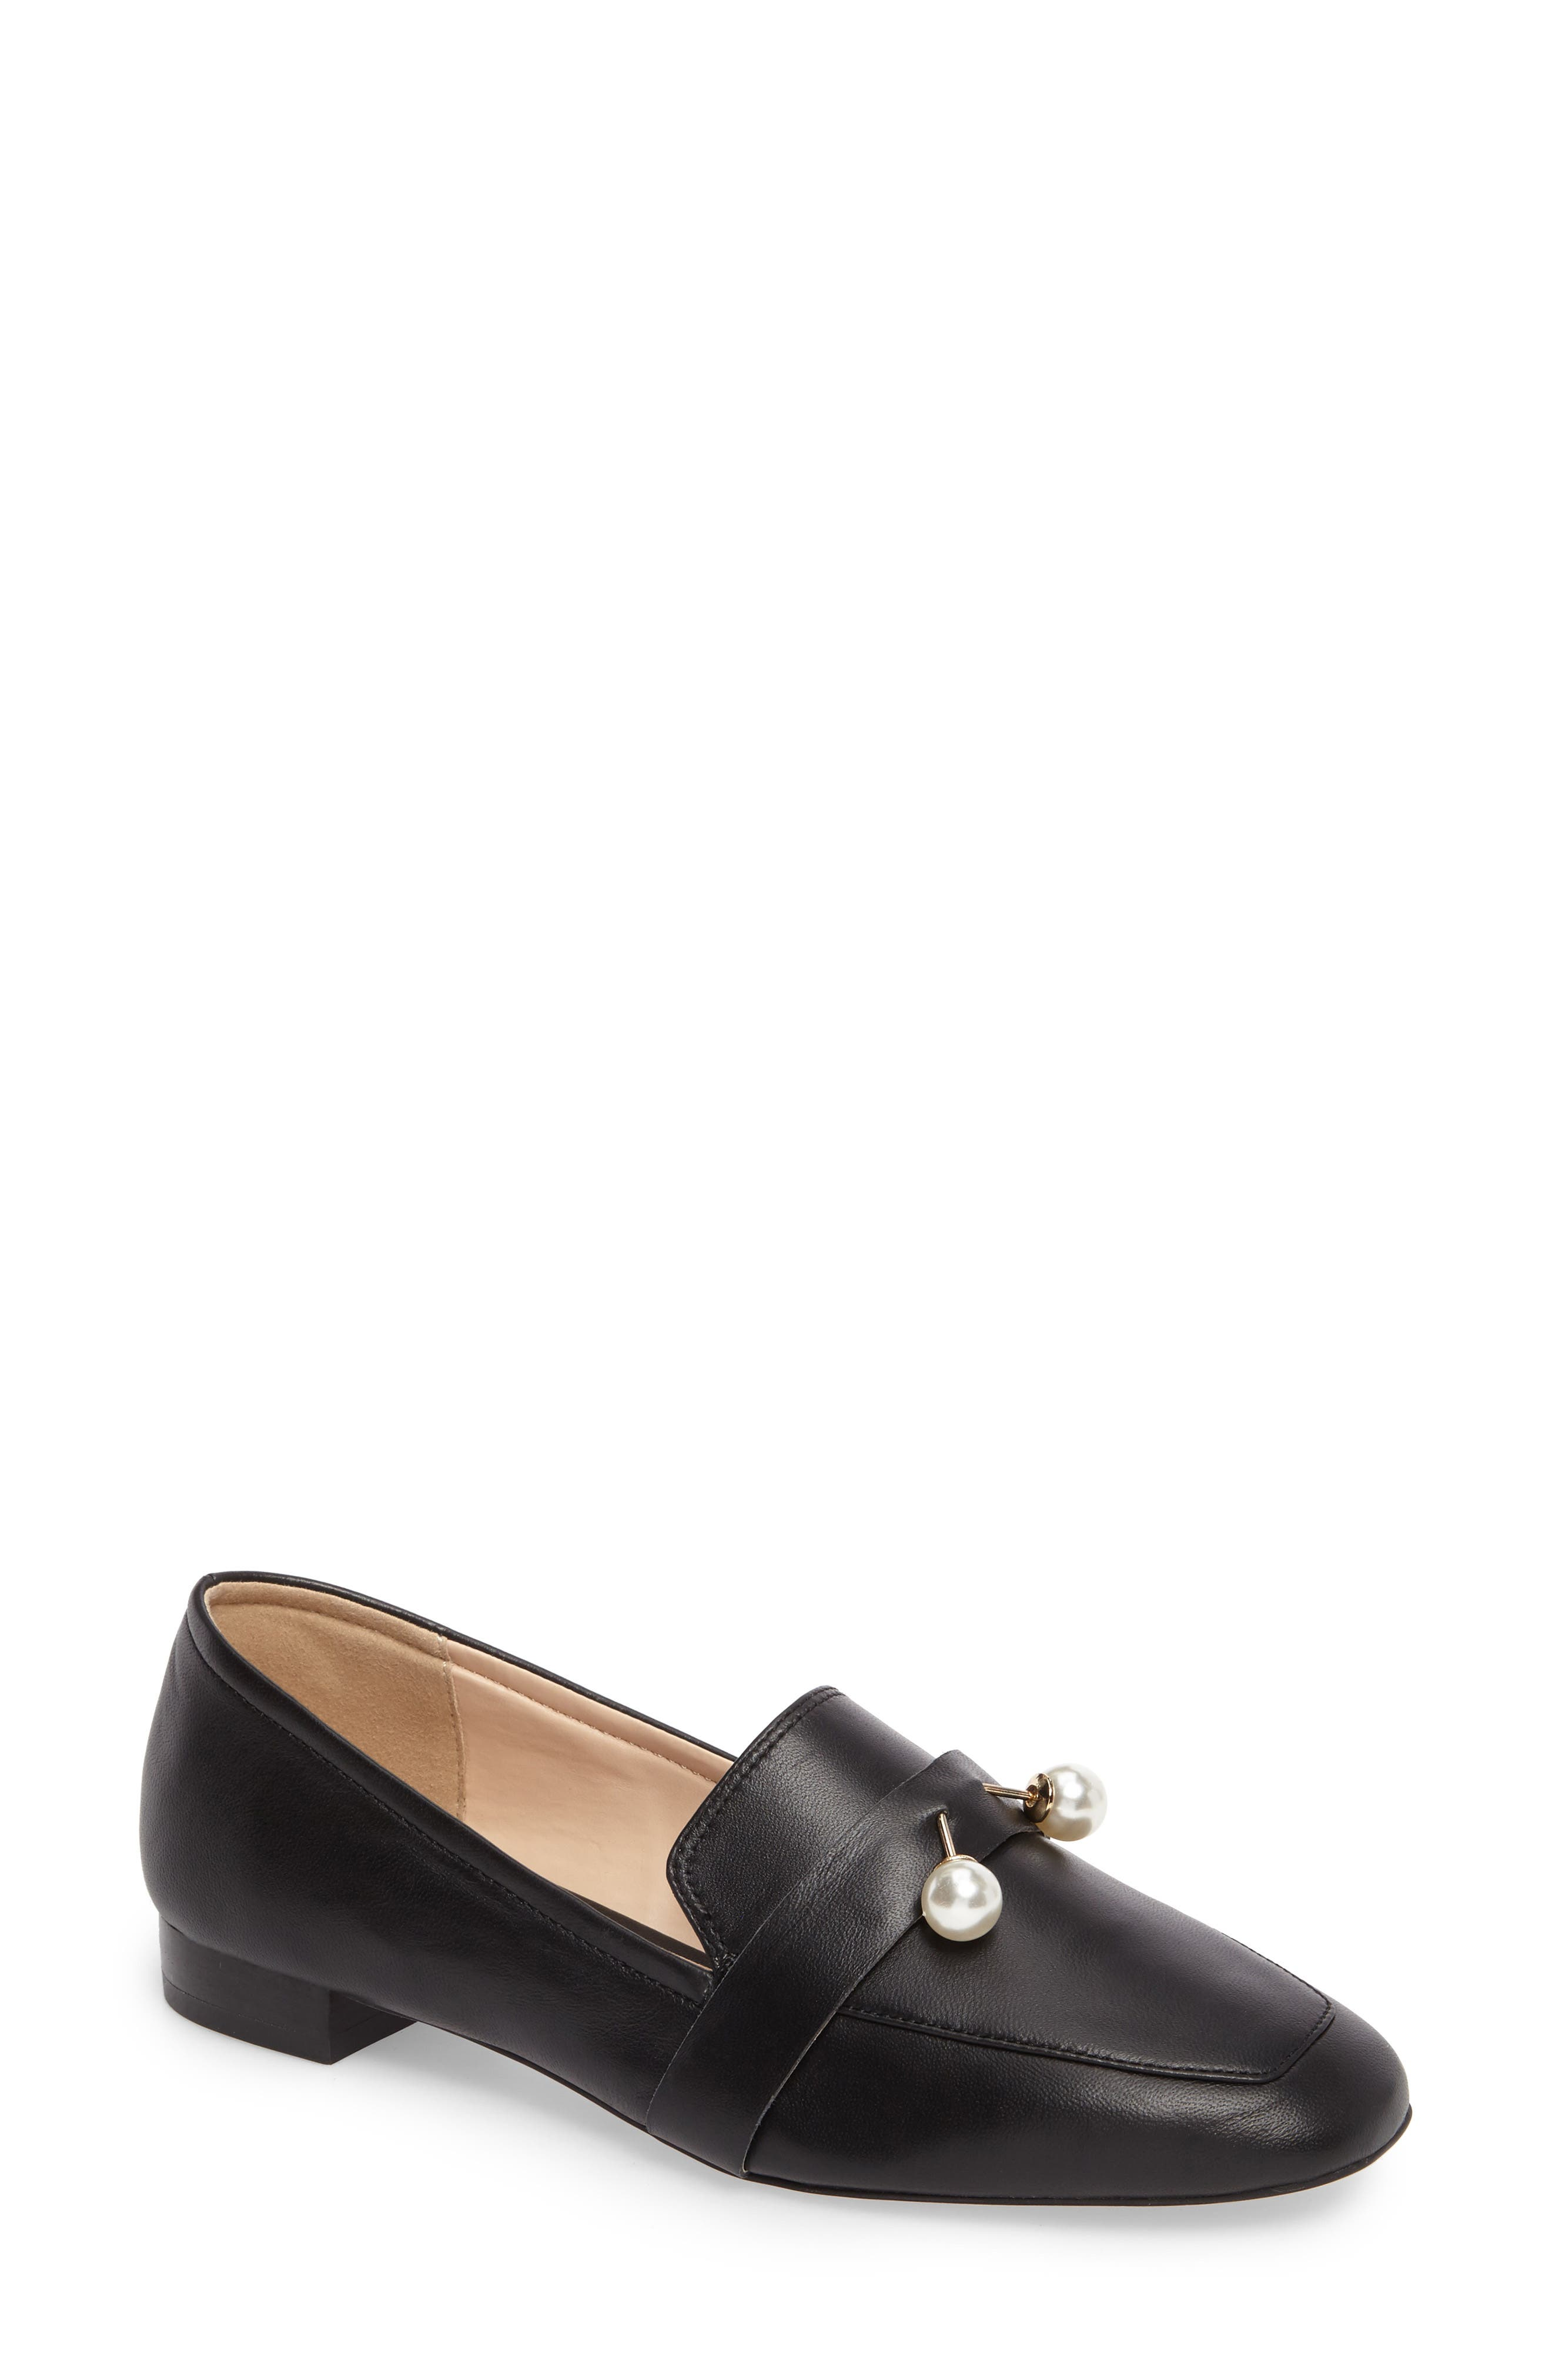 Caspar Loafer,                         Main,                         color,